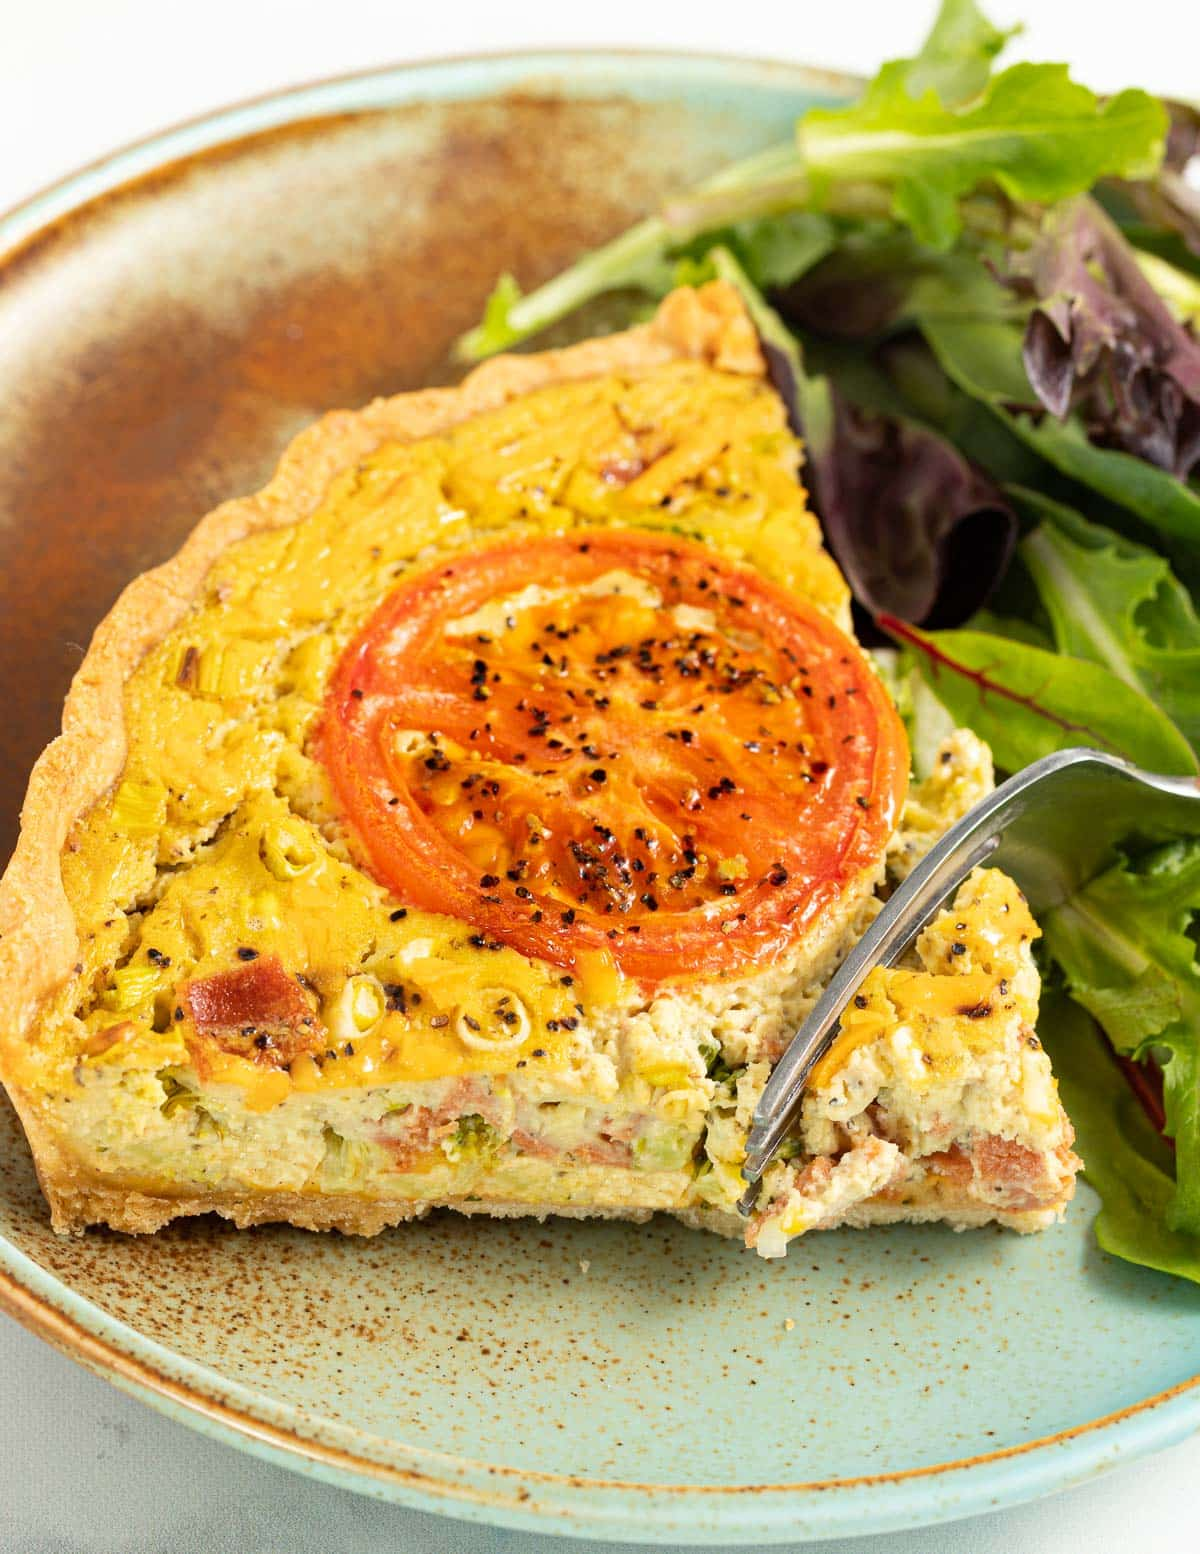 a fork cutting into a piece of quiche